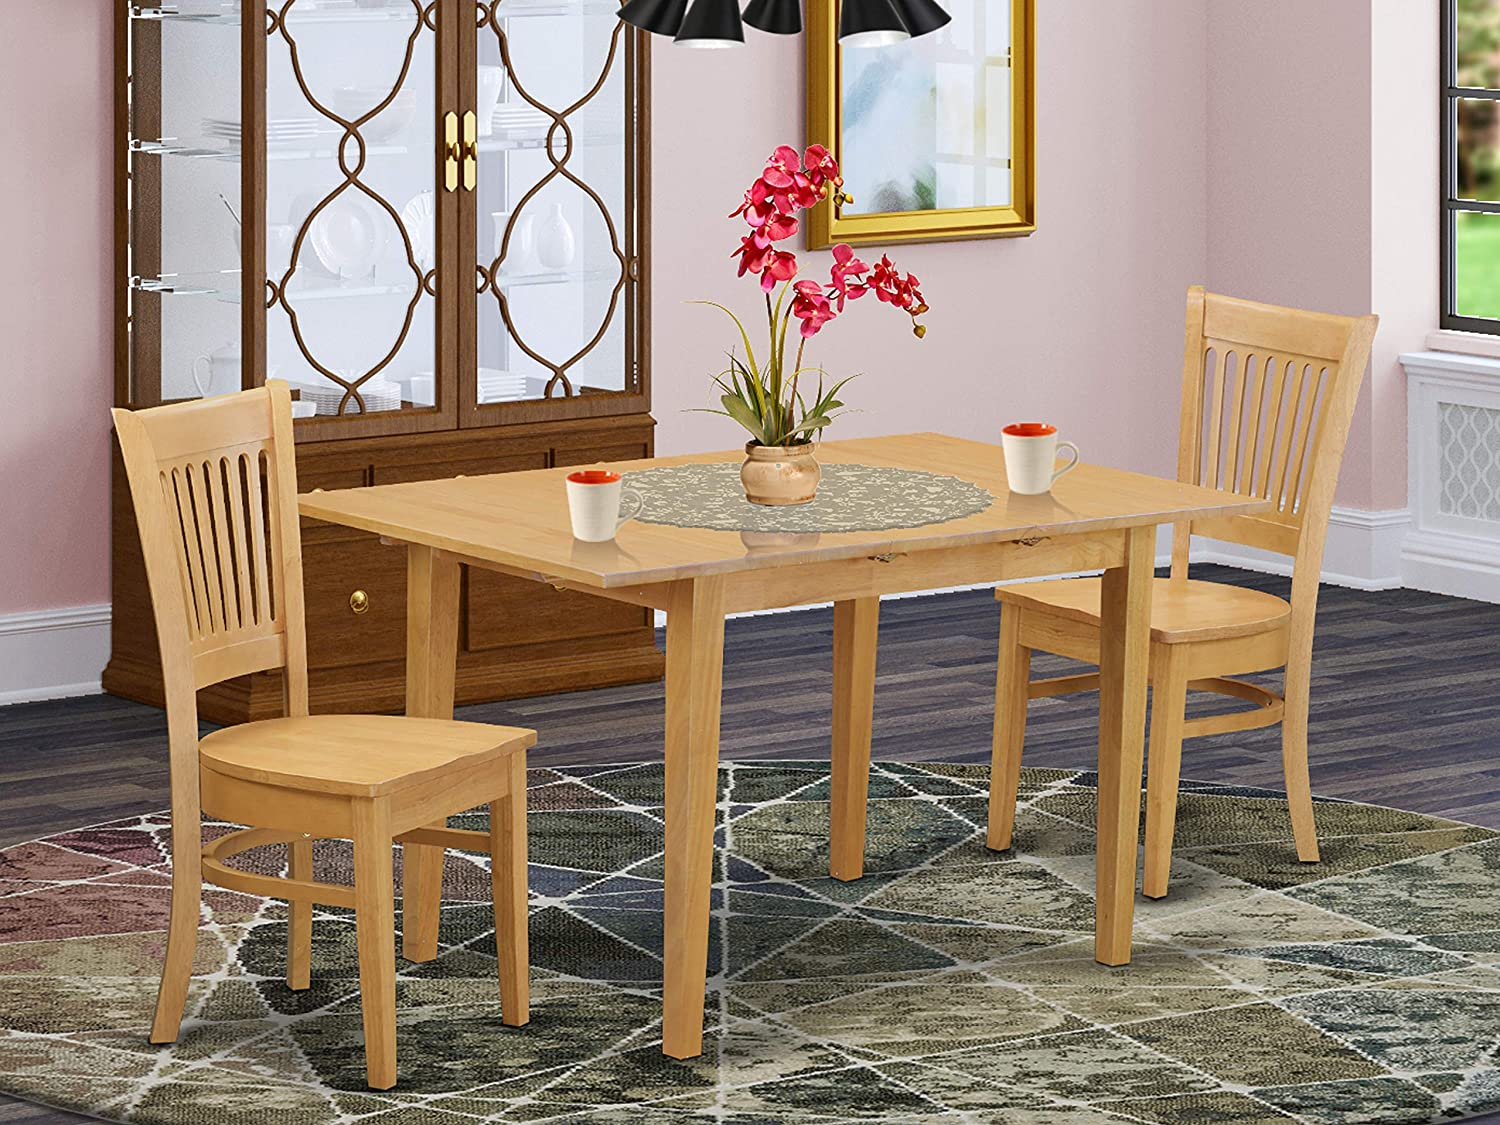 3 PC Kitchen Table set - Kitchen dinette Table and 2 dinette Chairs